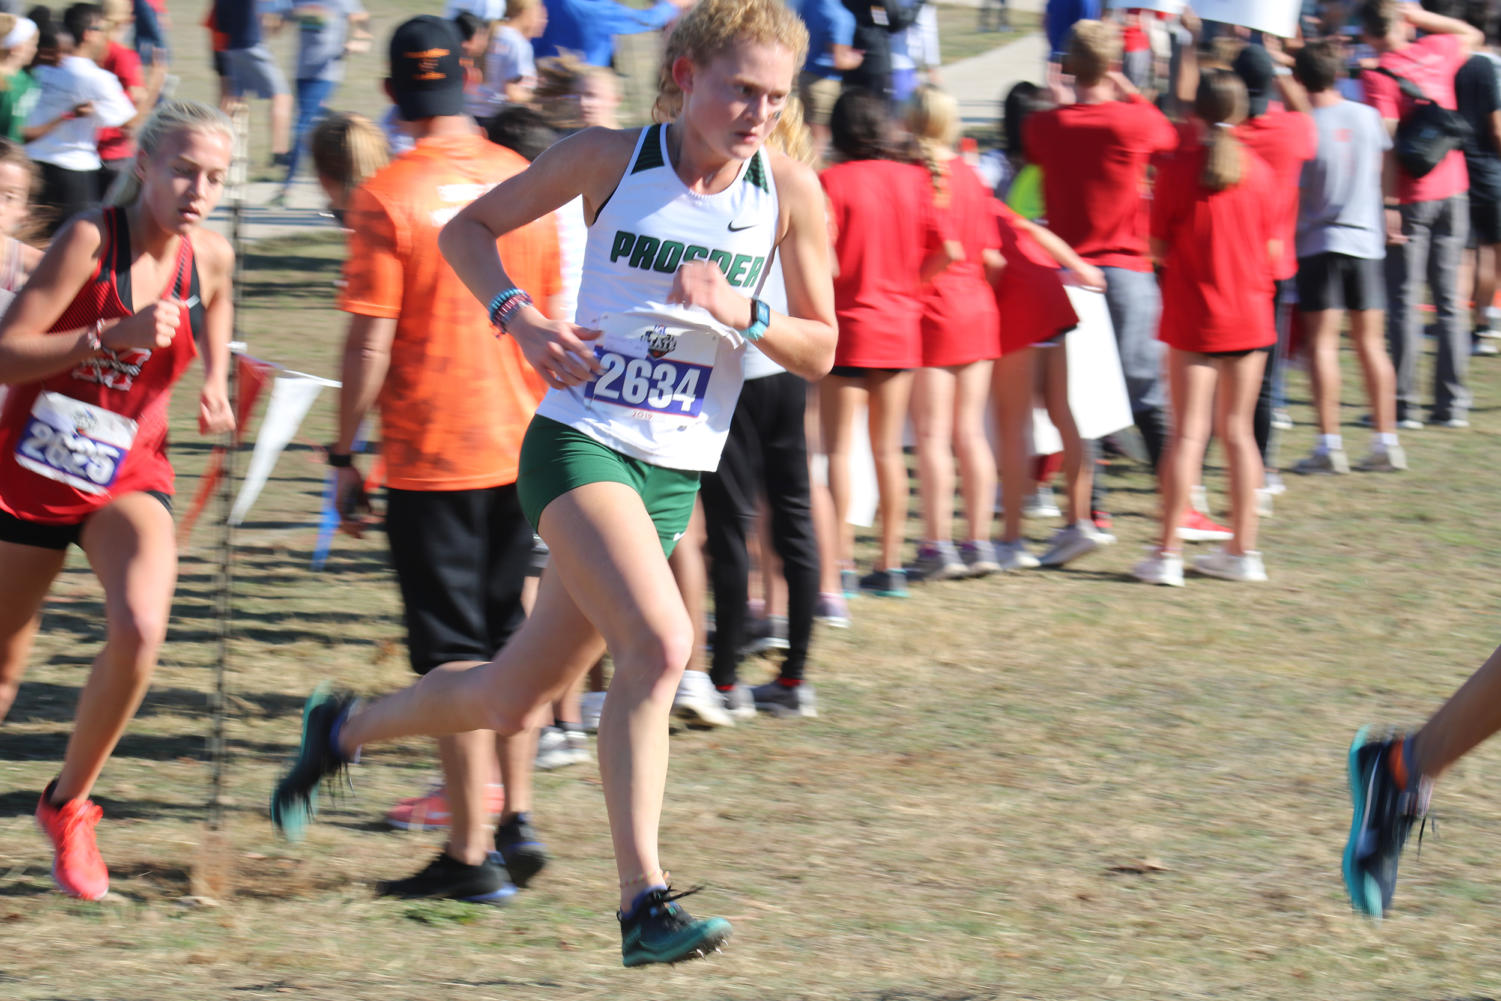 Sophomore Aubrey O'Connell races in the 5,000-meter competition. O'Connell won the state meet and was named